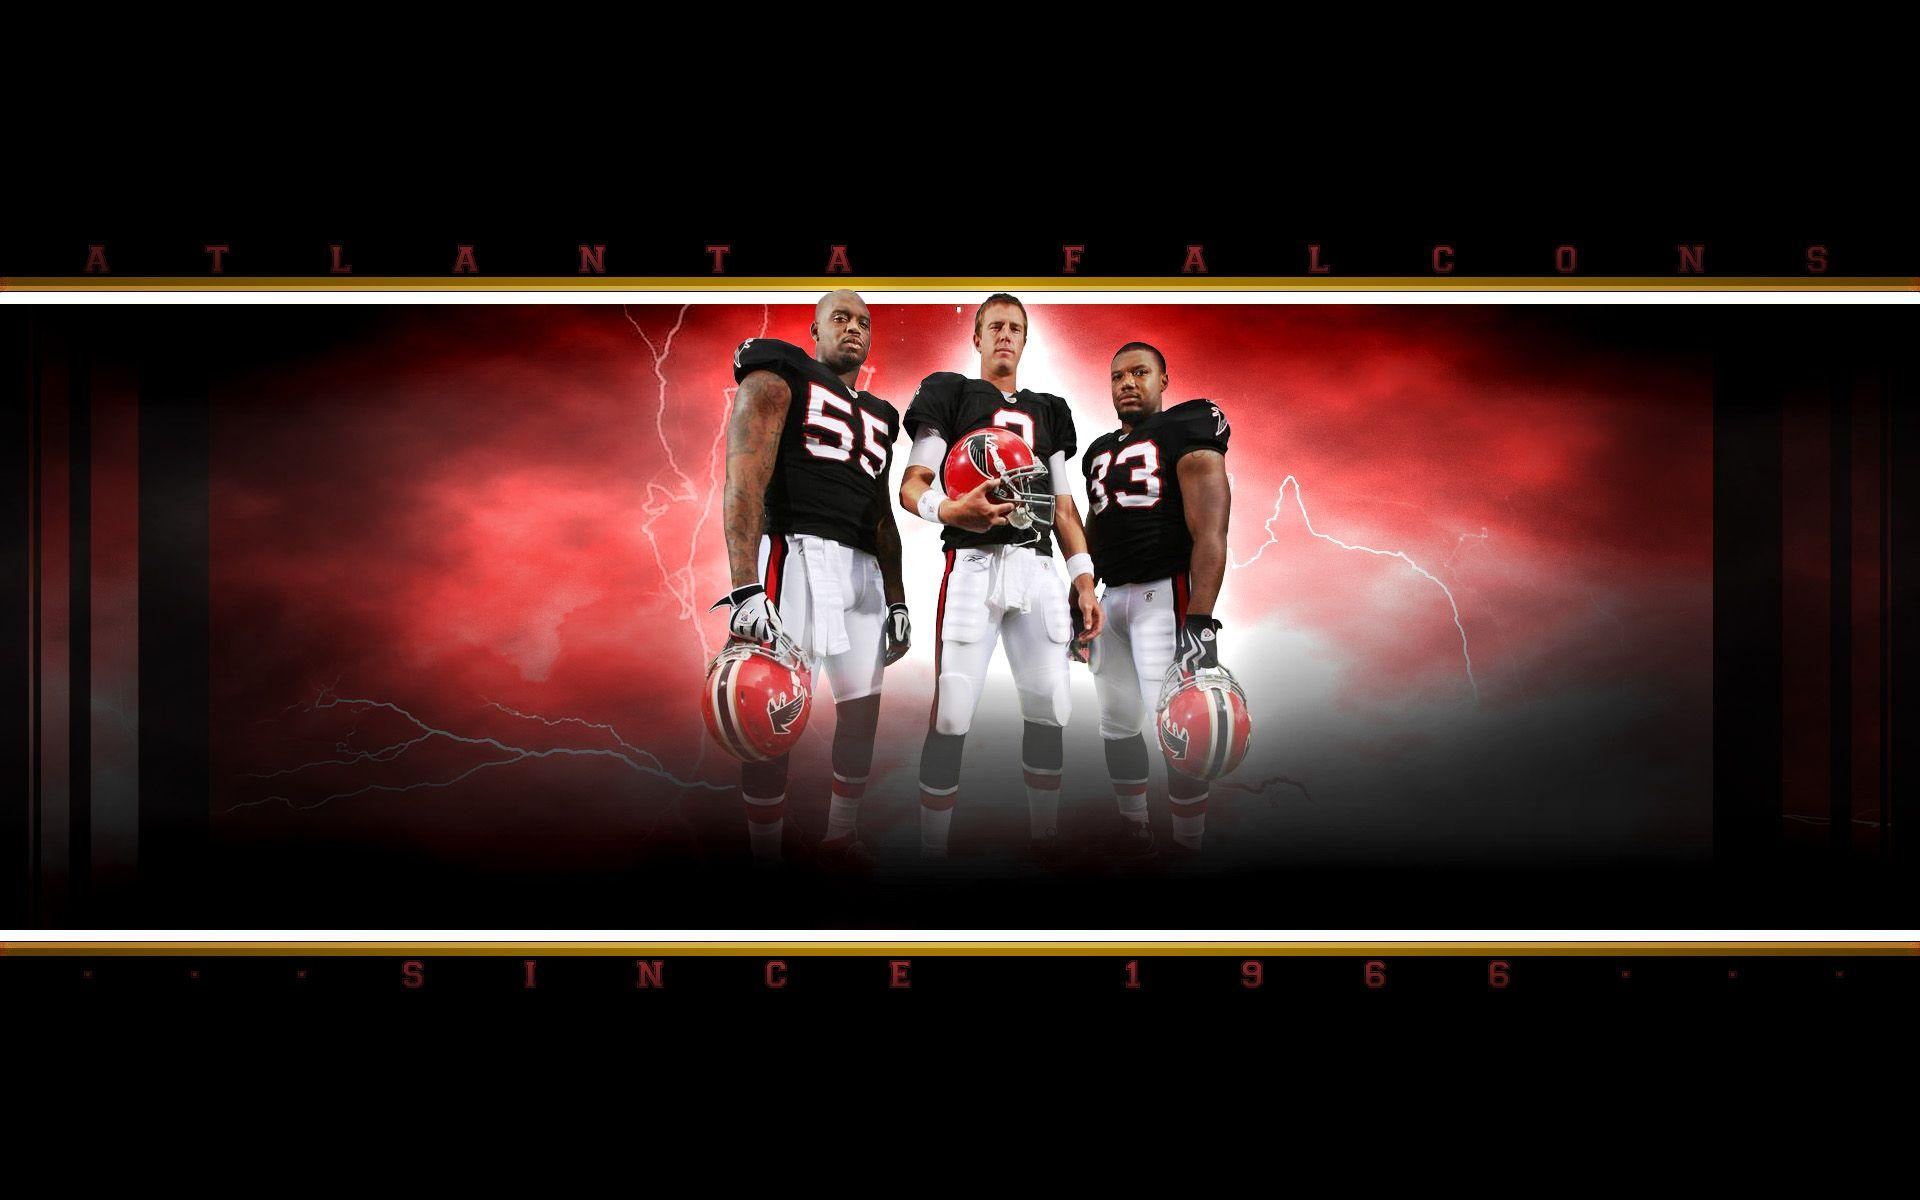 Falcons Wallpaper: Atlanta Falcons Desktop Wallpapers